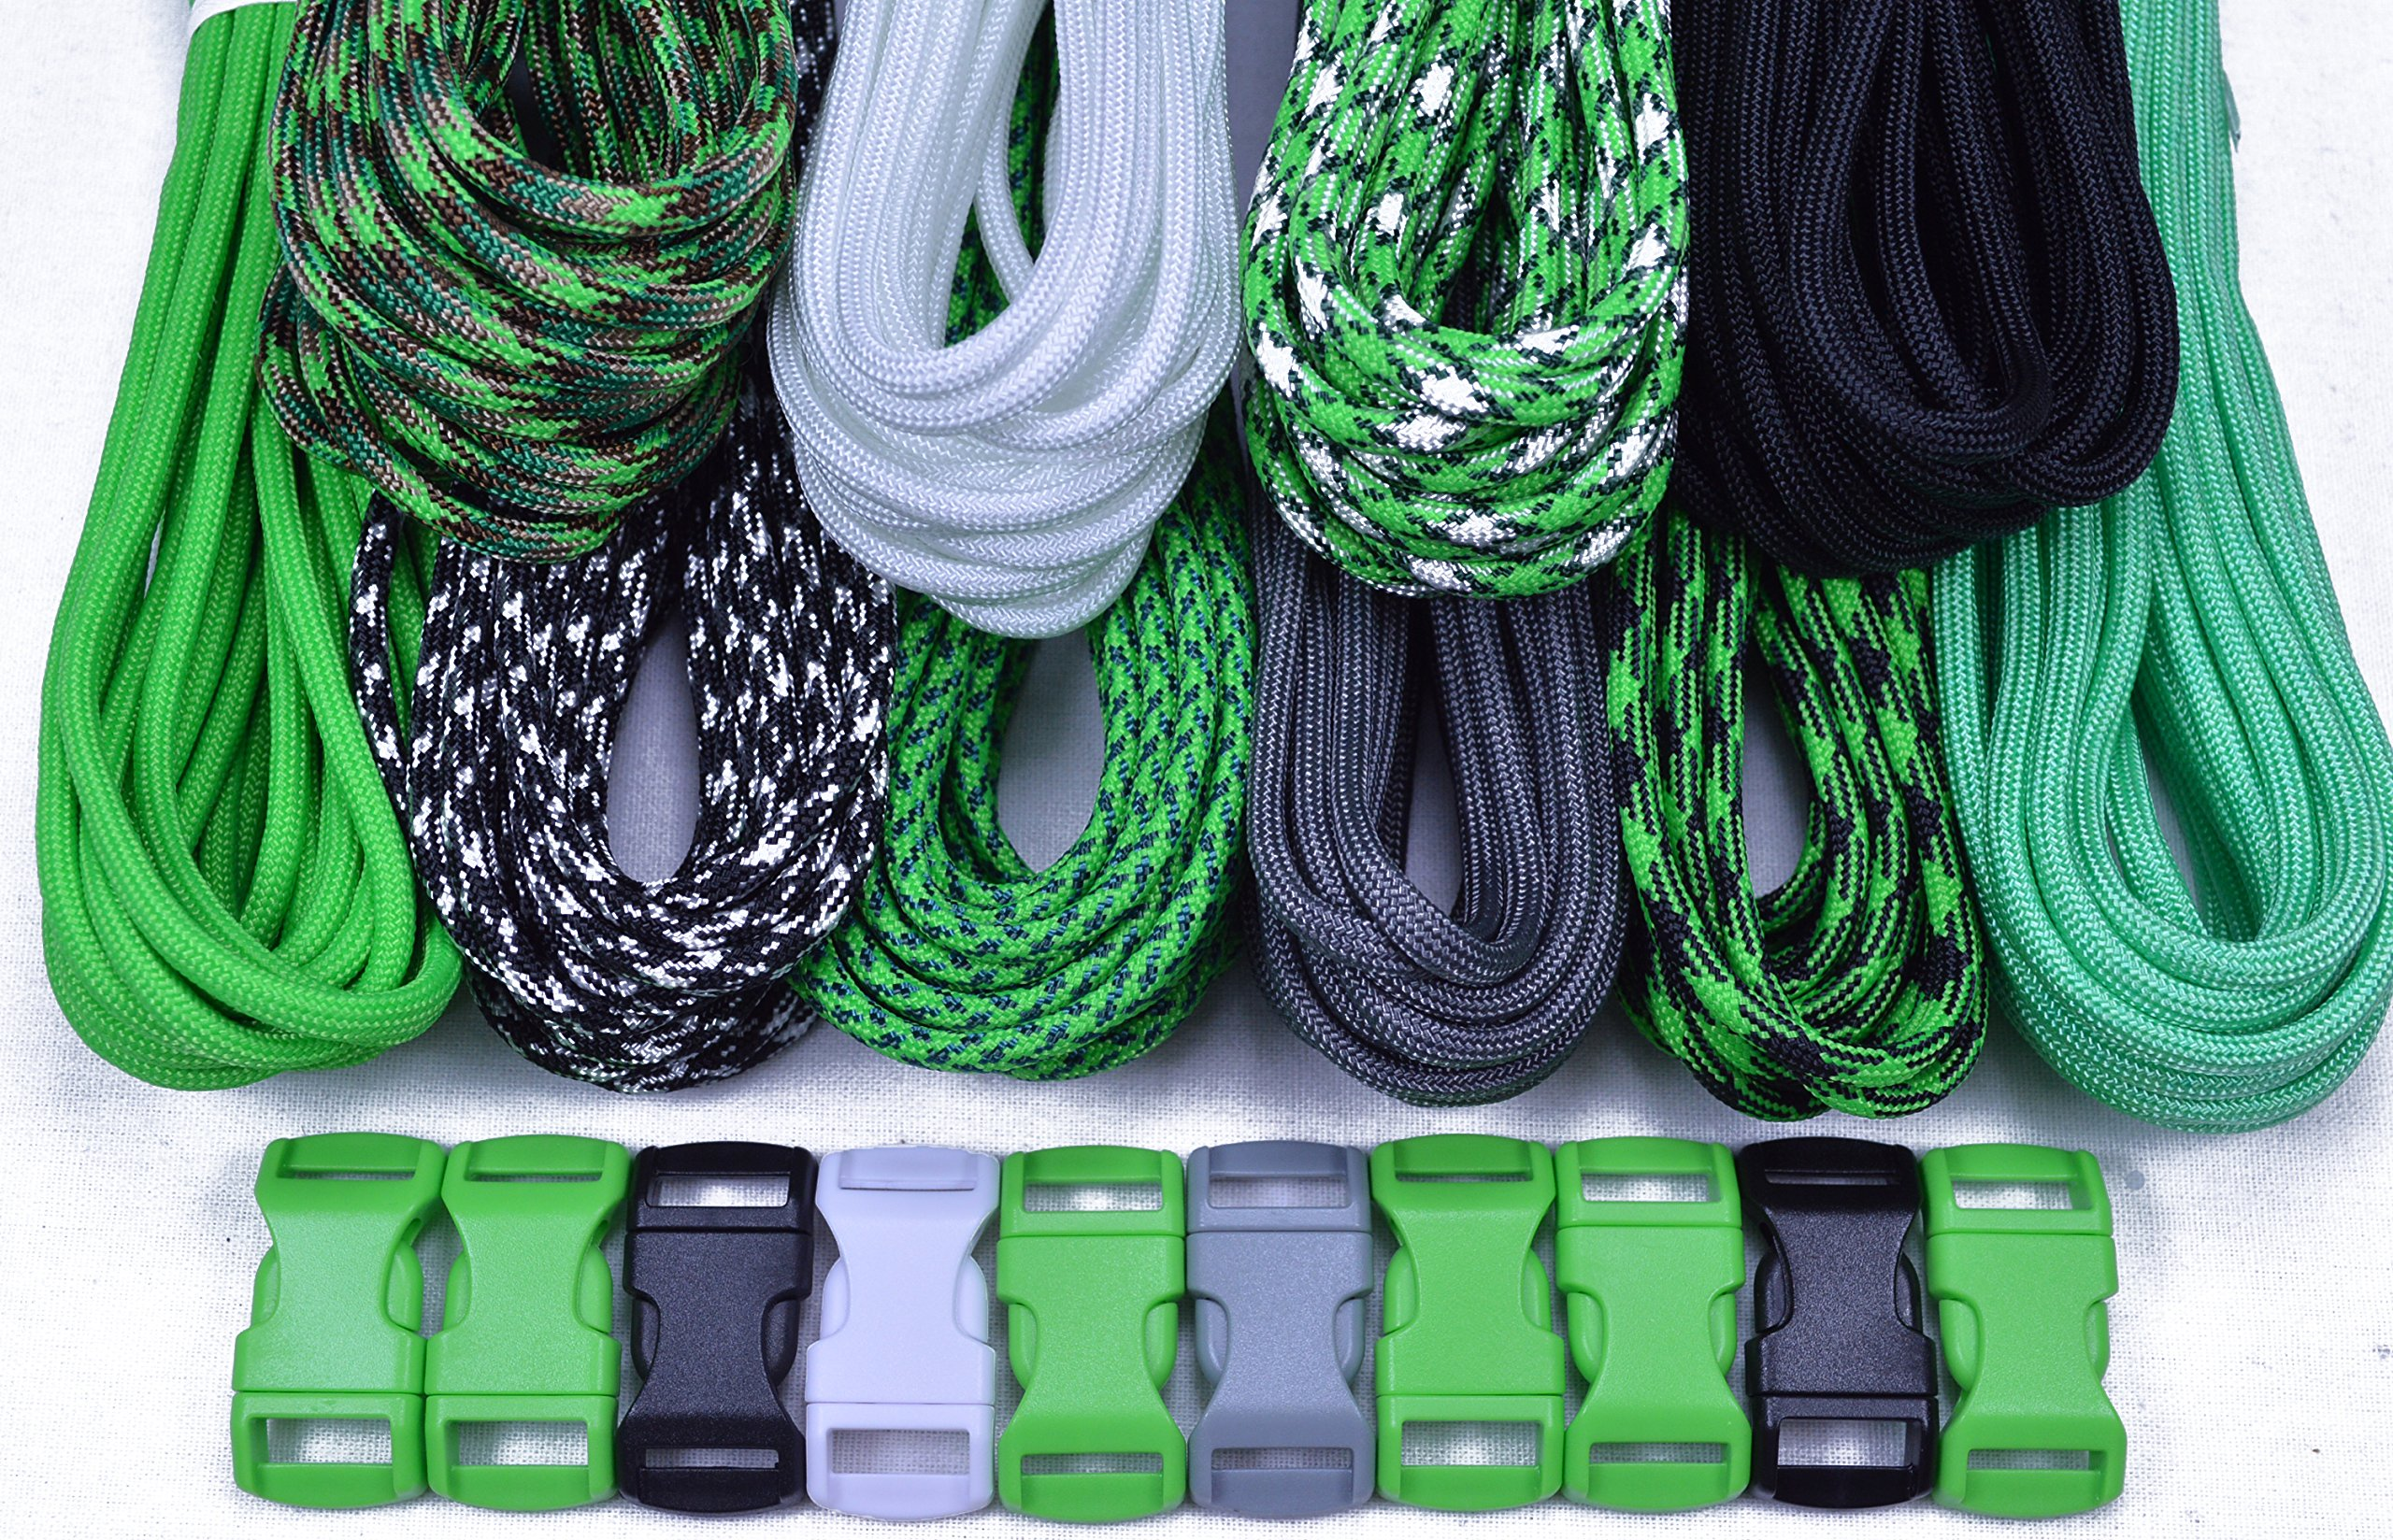 Bored Paracord Brand Paracord Starter Kit - Keep Calm Combo Kit by Bored Paracord